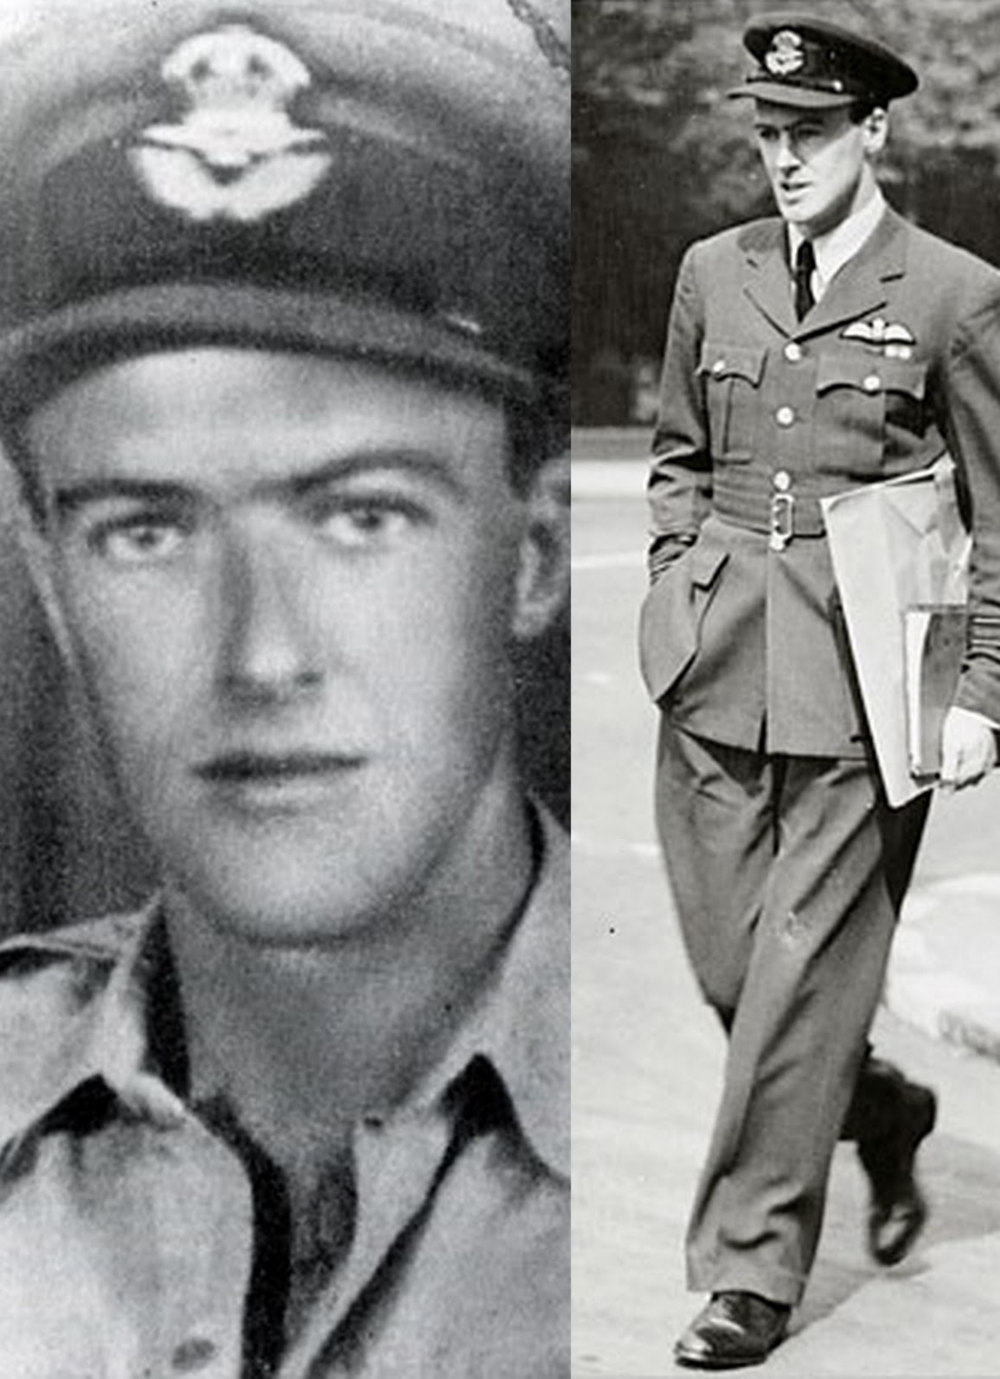 Roald Dahl in uniform (via B for Bell)